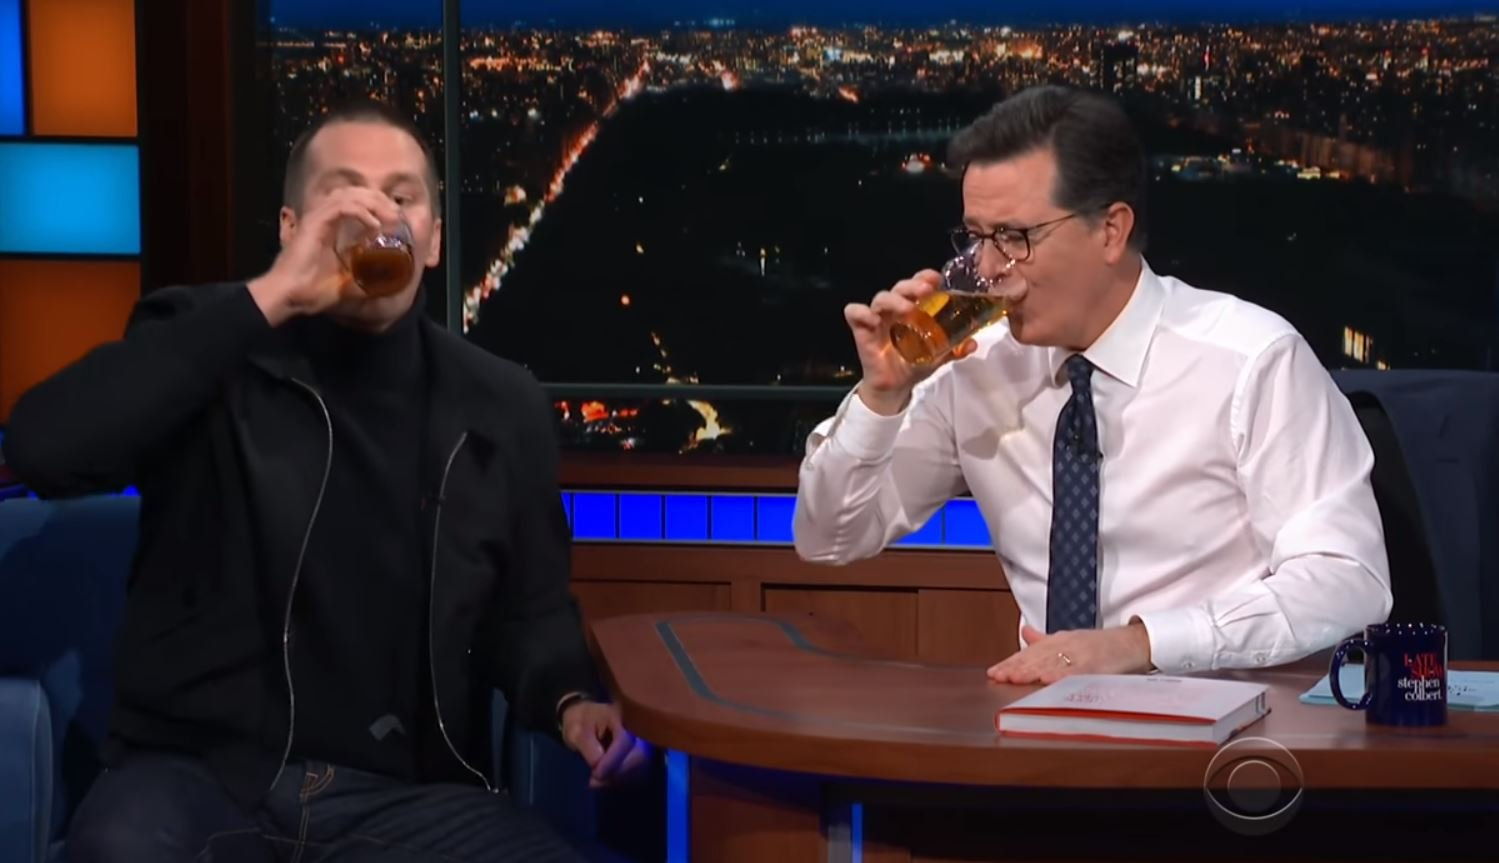 Photo: The Late Show with Stephen Colbert